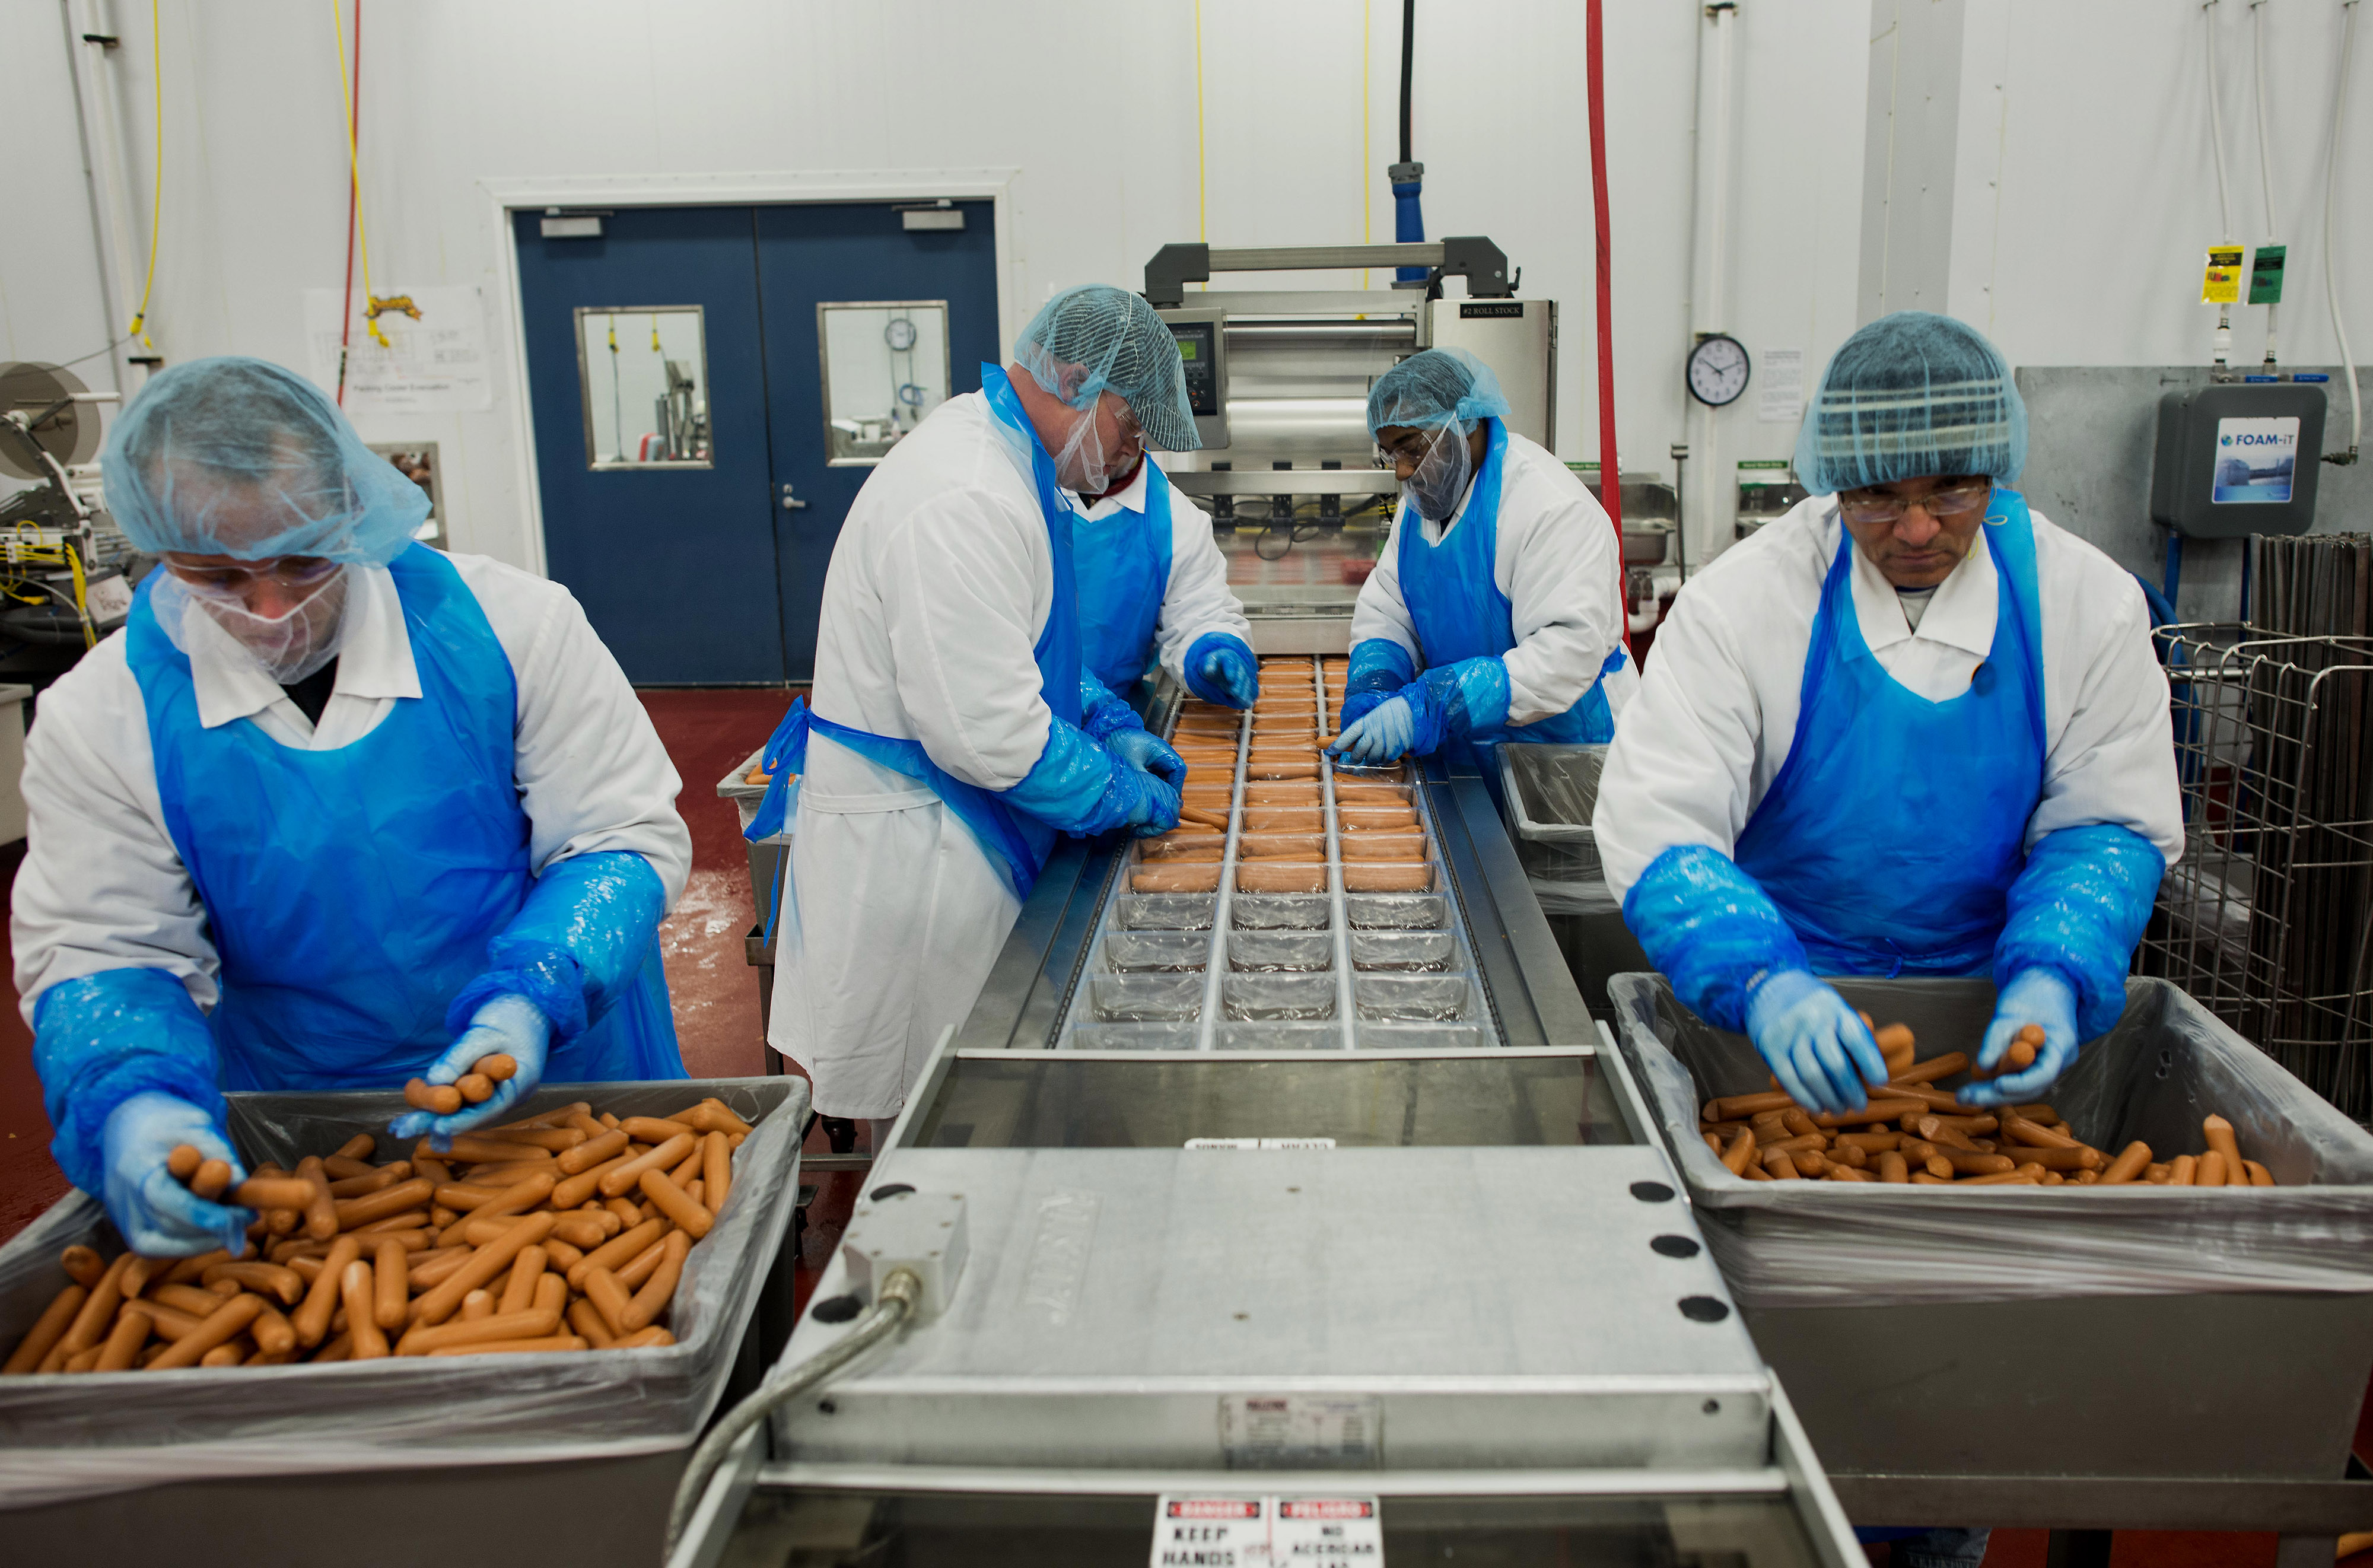 Hot Dog Production At Smith Provisions Co. As US Beef And Pork Exports Fall